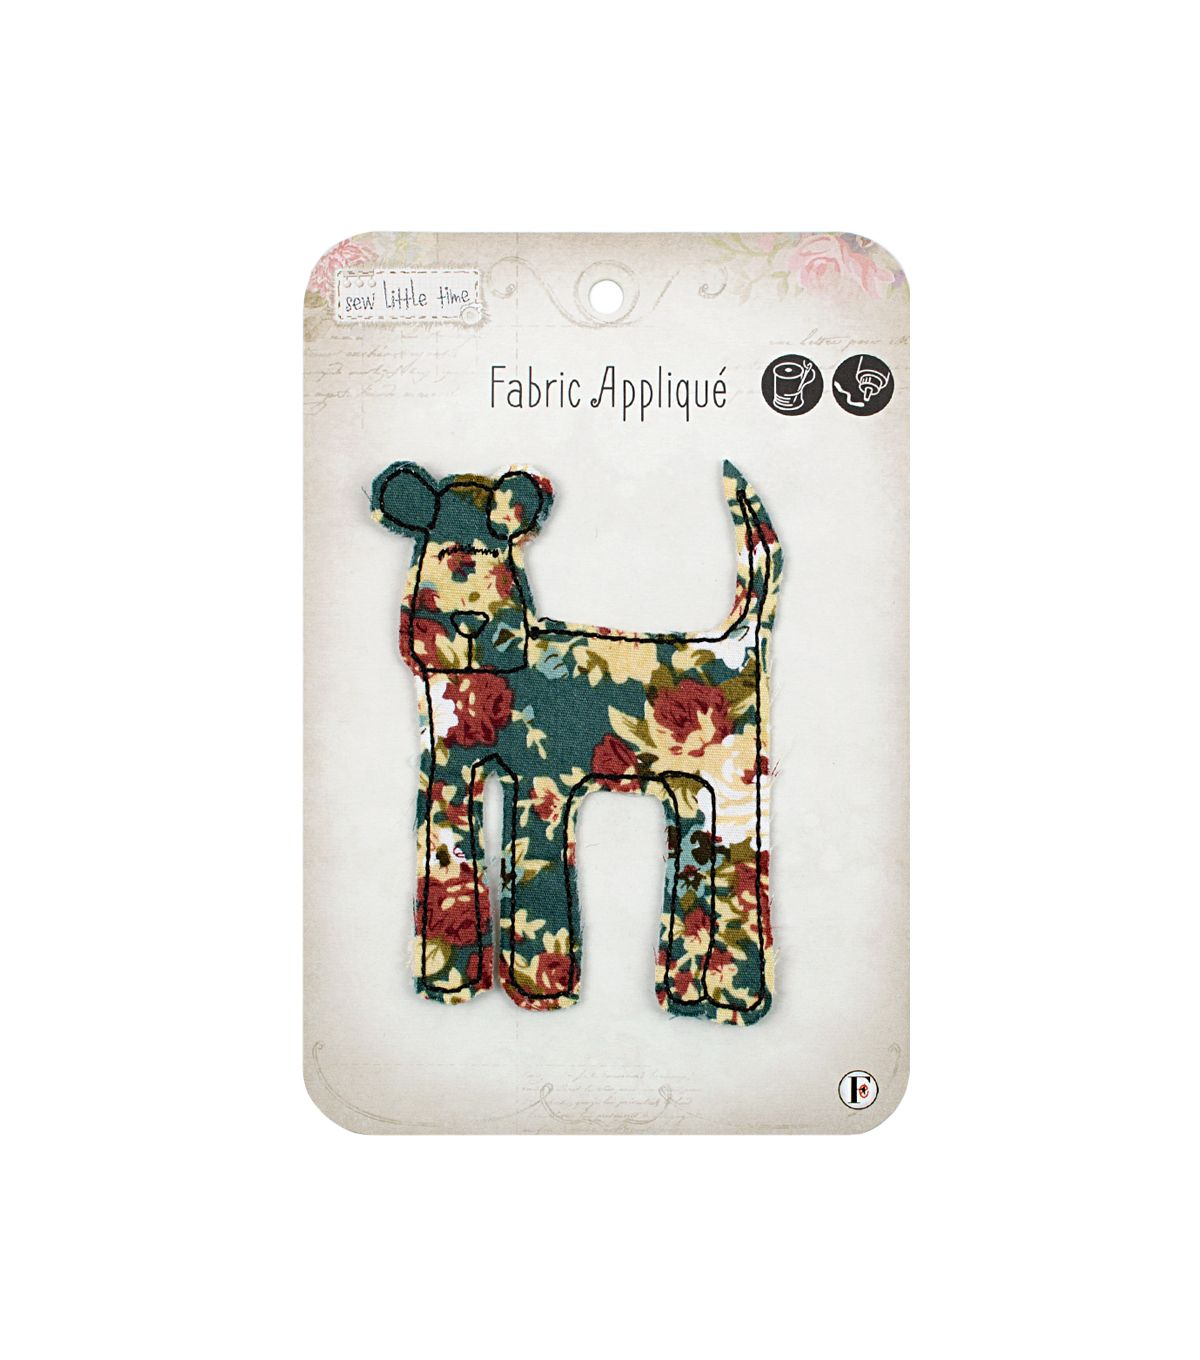 Sew Little Time Dog applique available at Joann's Craft